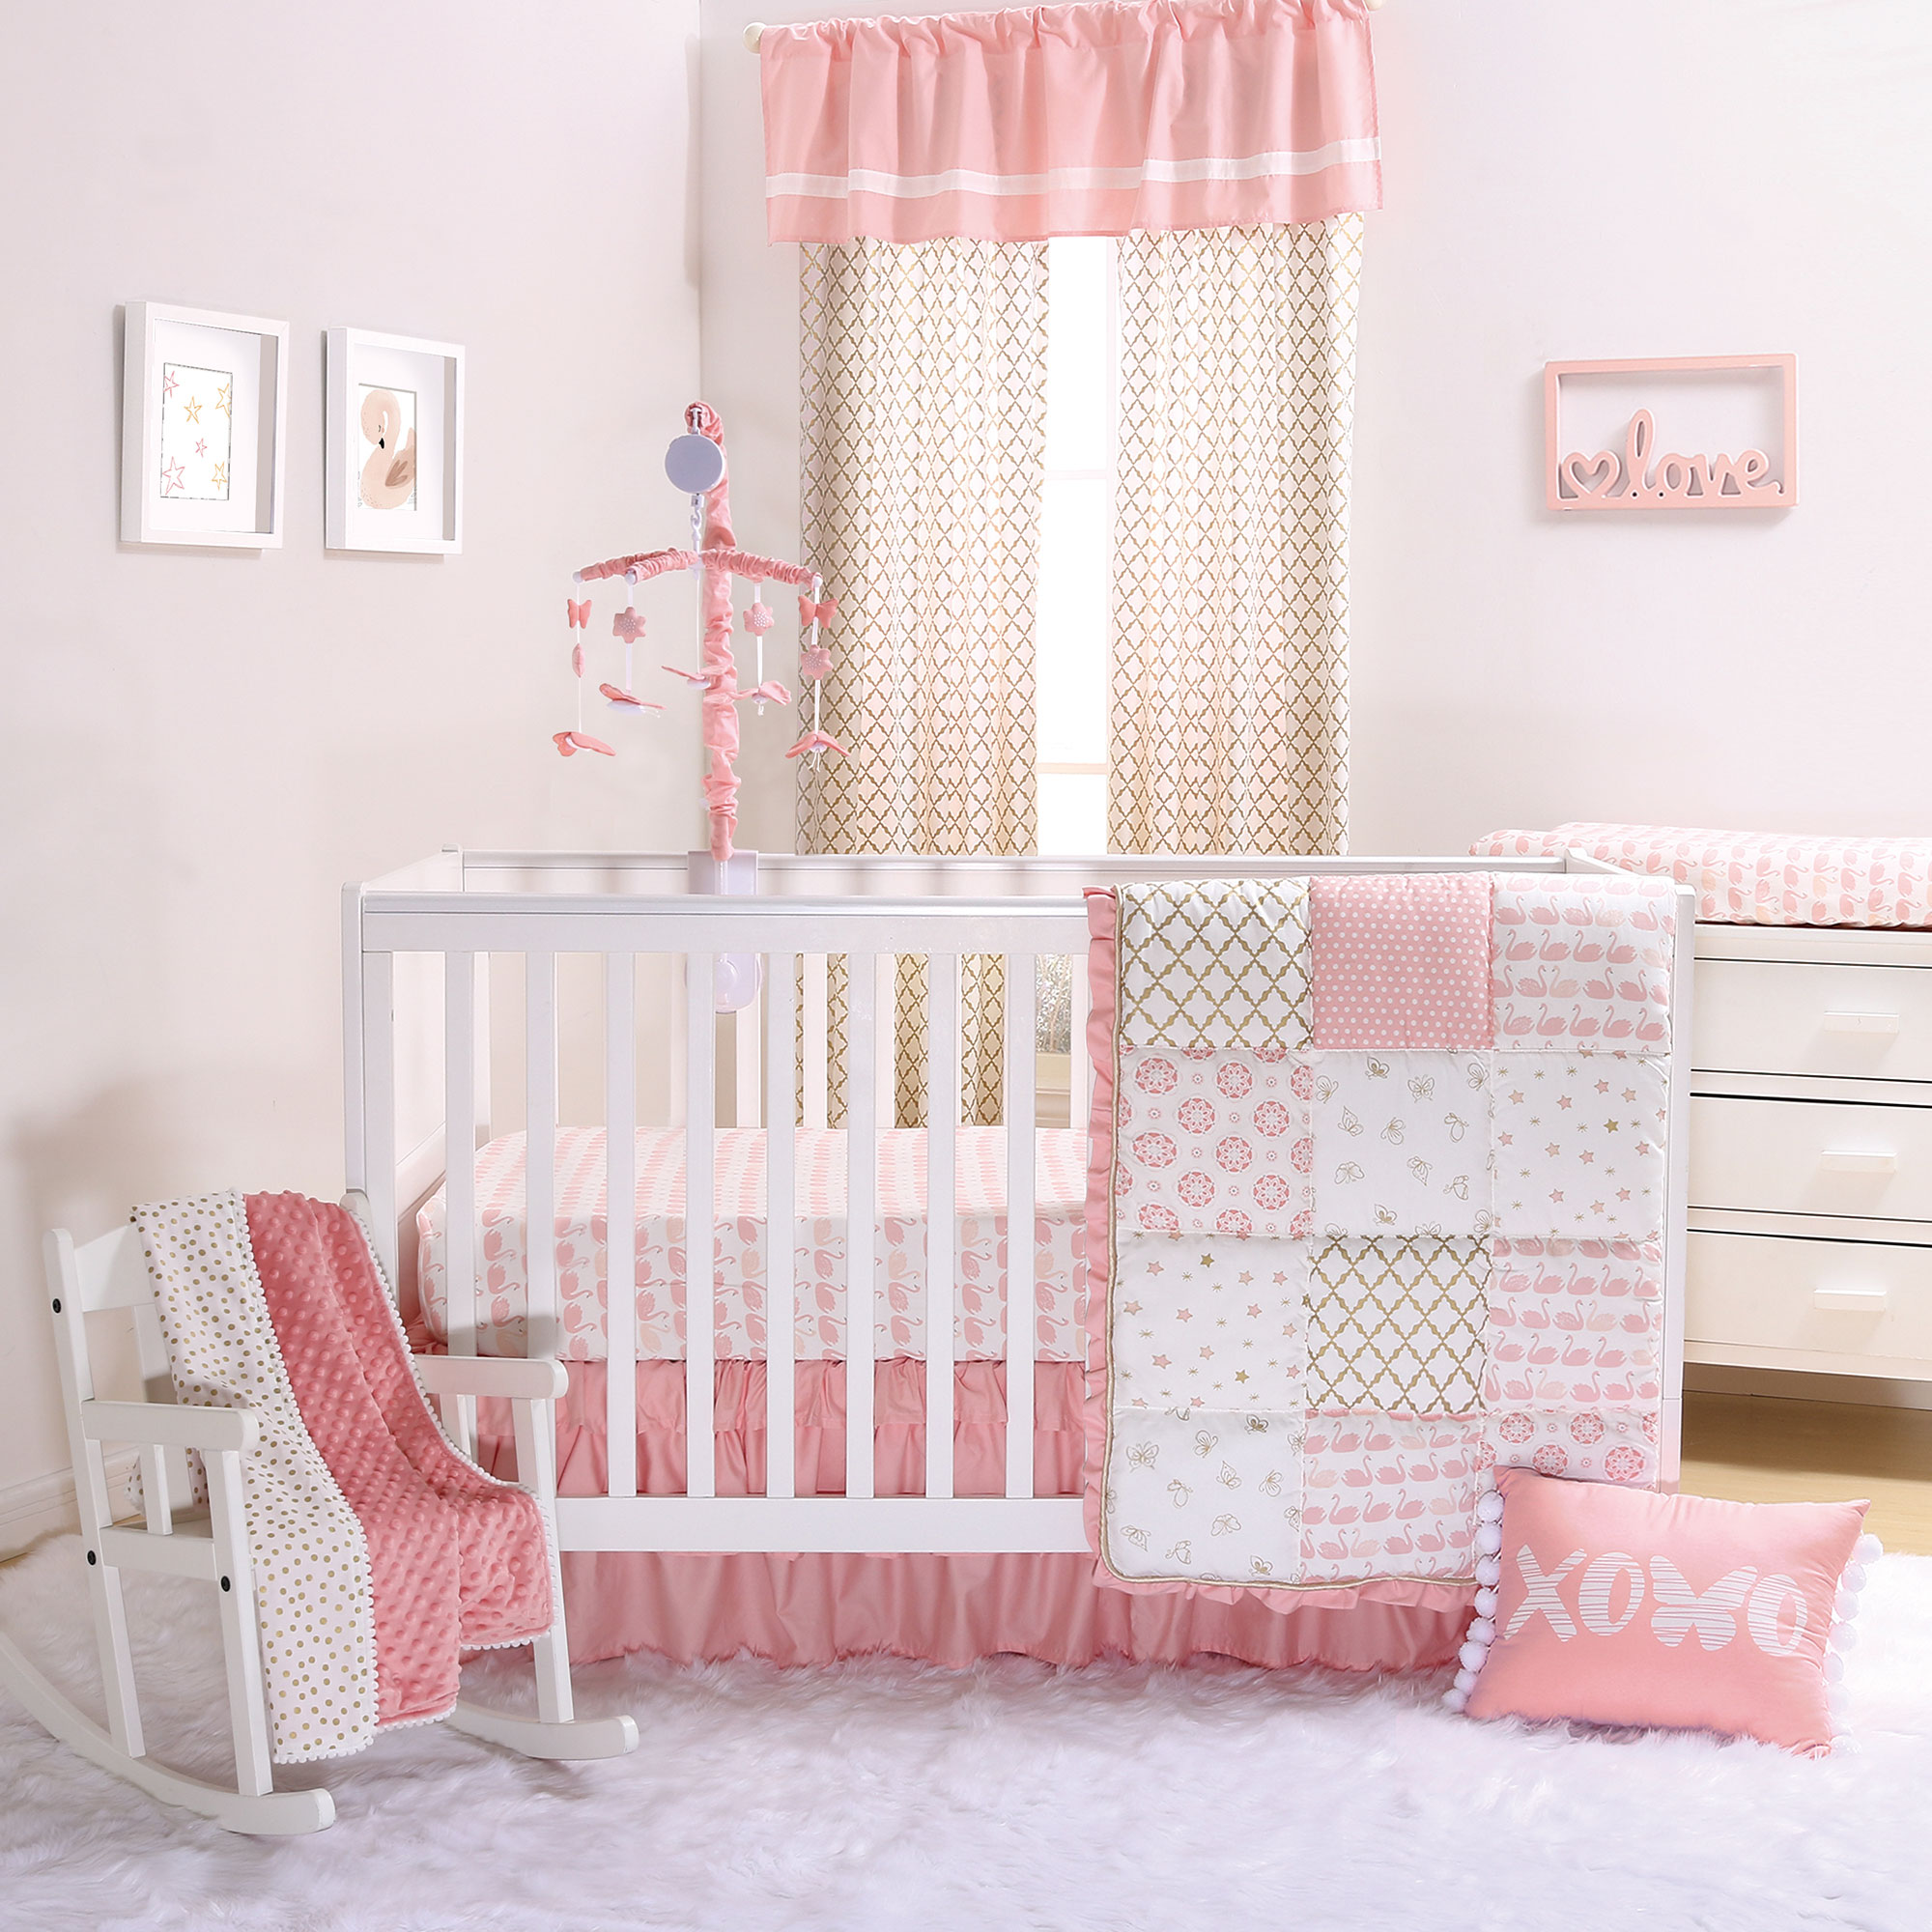 Coral Pink Swan and Gold Trellis 4 Piece Crib Bedding Set by The Peanut Shell